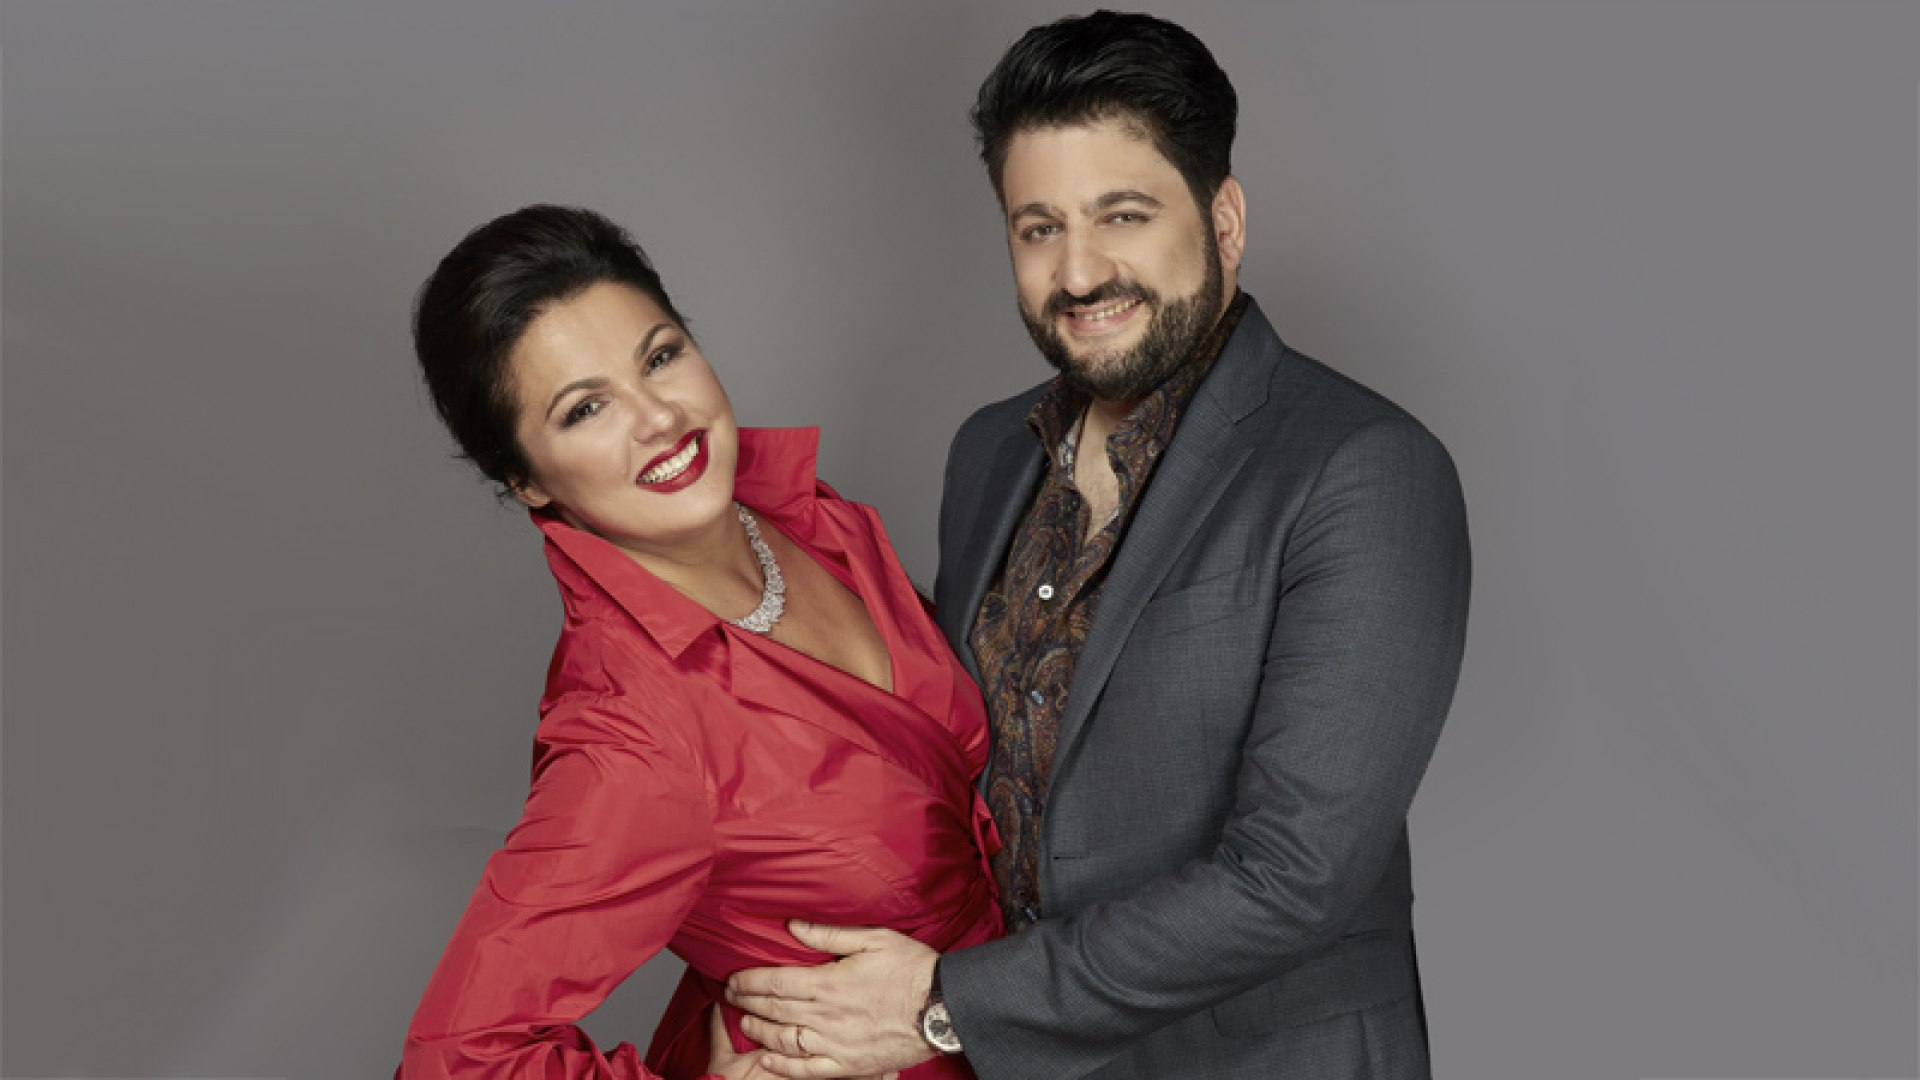 The Stars of Opera with Anna Netrebko